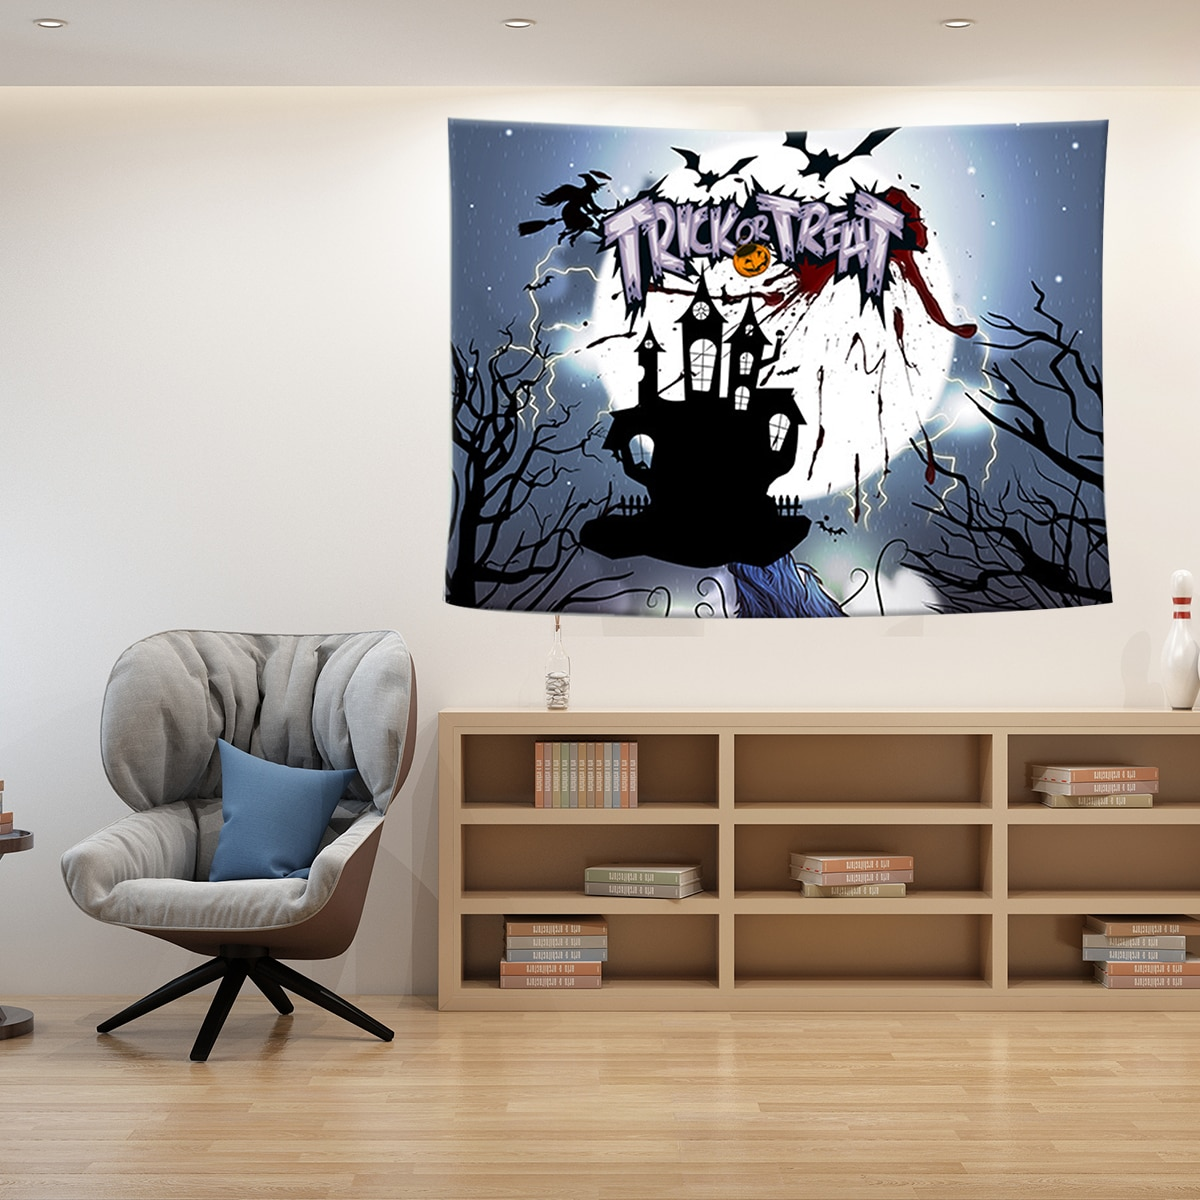 Halloween Wall Hanging Tapestry Home Dorm Party Decor 200cm x 150cm Halloween theme pattern 2019